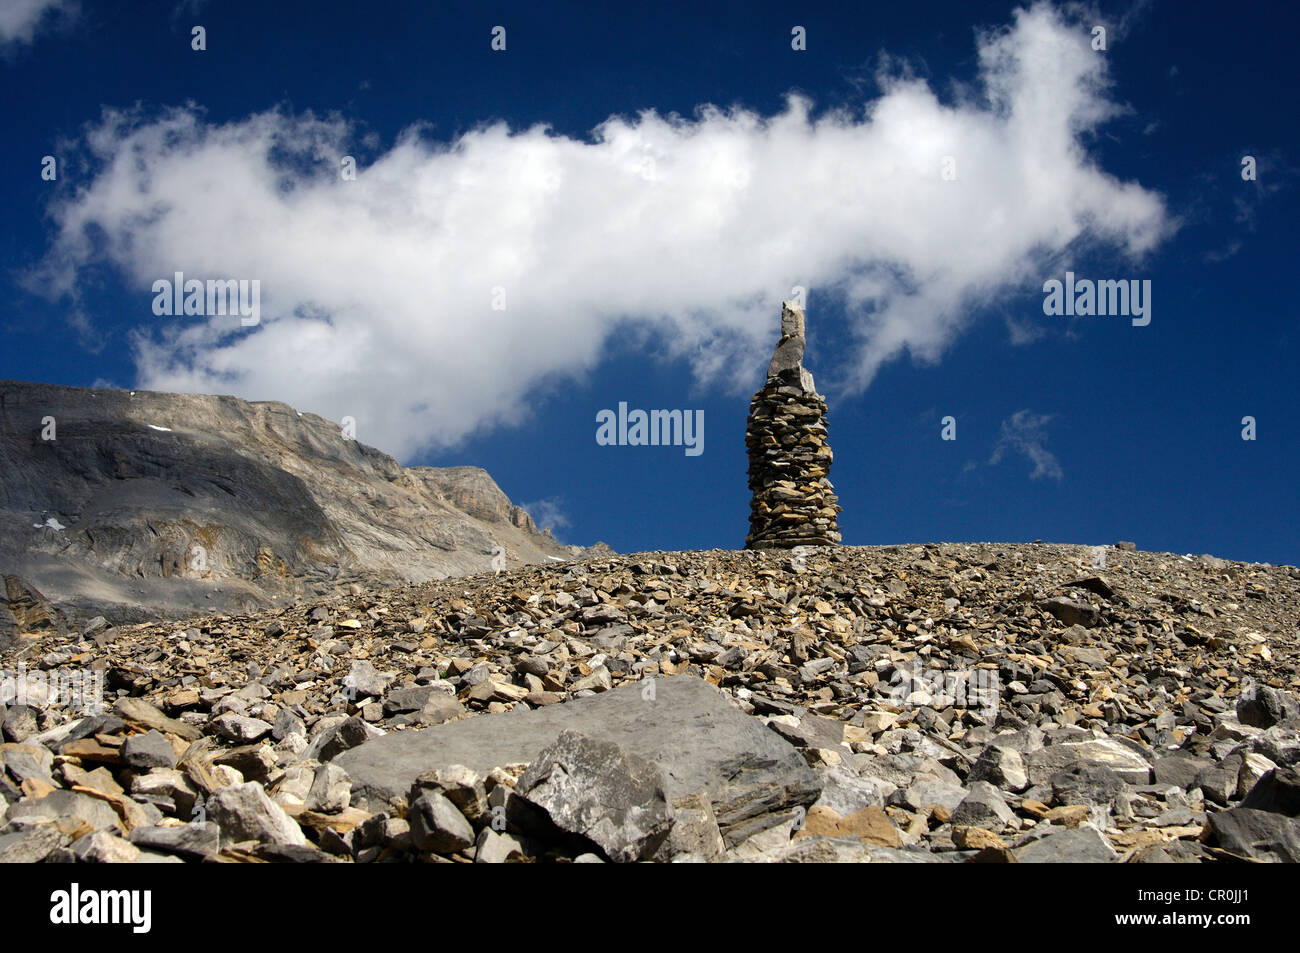 Cairn as signpost and orientation help in rocky alpine terrain without trails, Valais, Switzerland, Europe - Stock Image